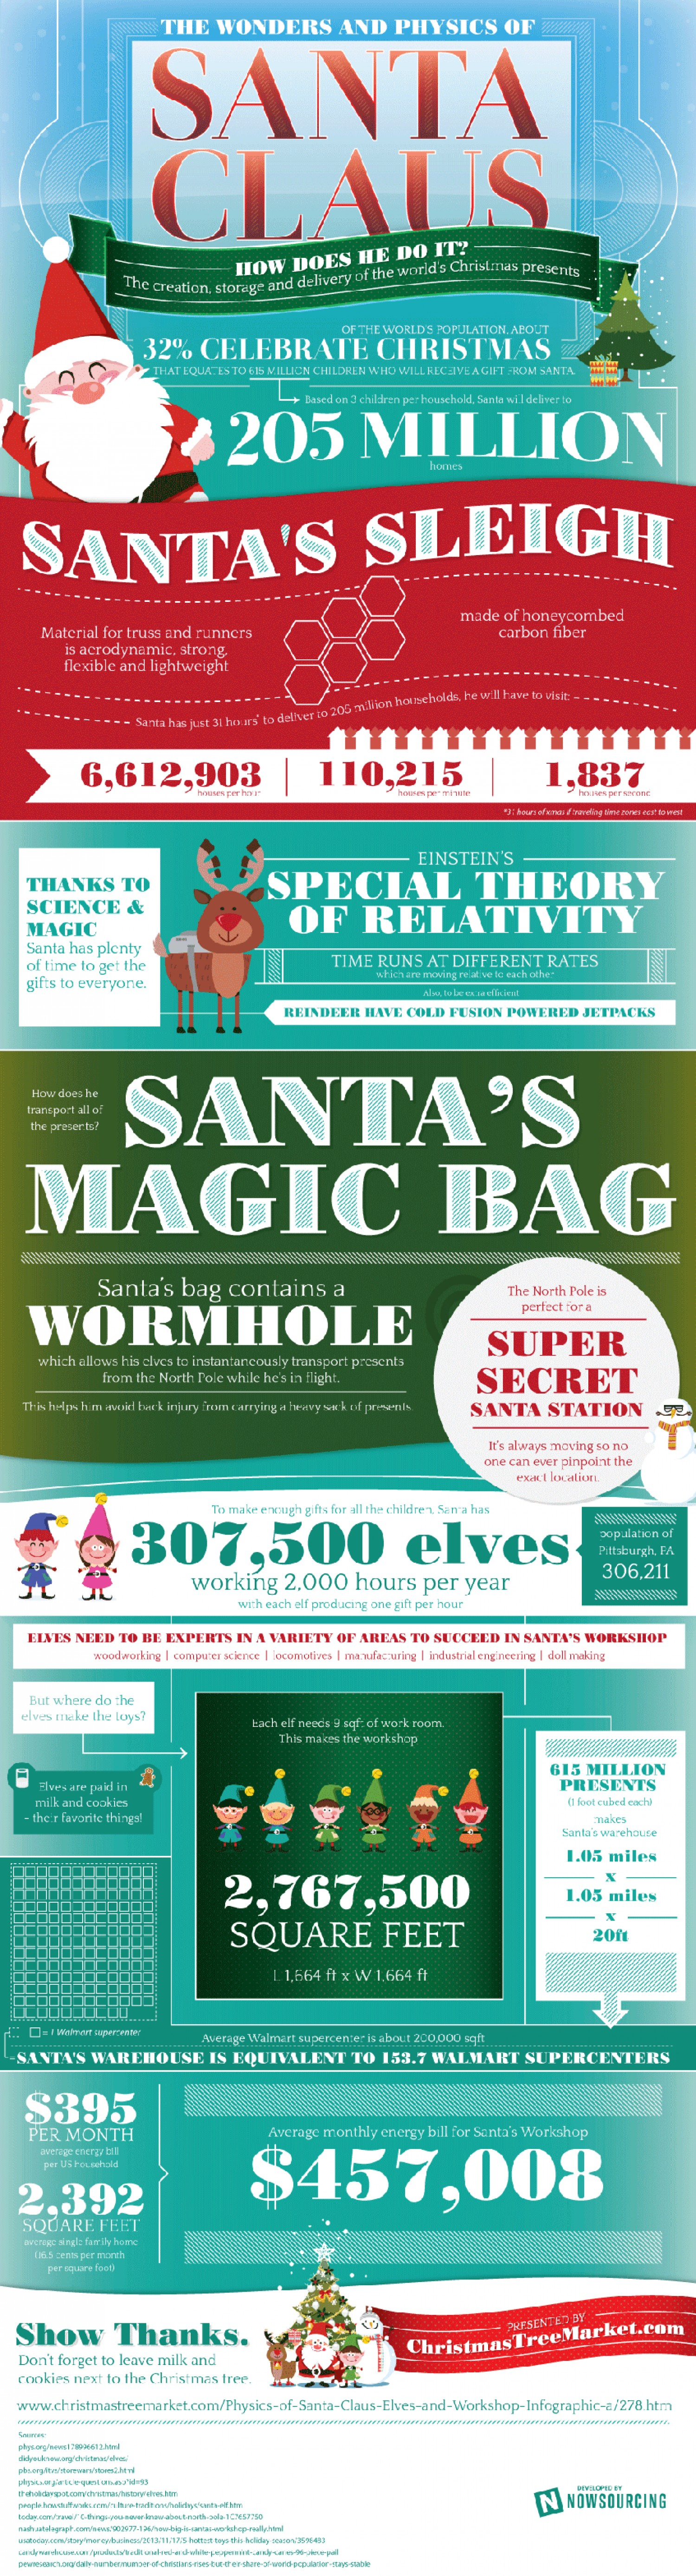 they-physics-of-santa-claus_52ba4c0bb950c_w1500.png